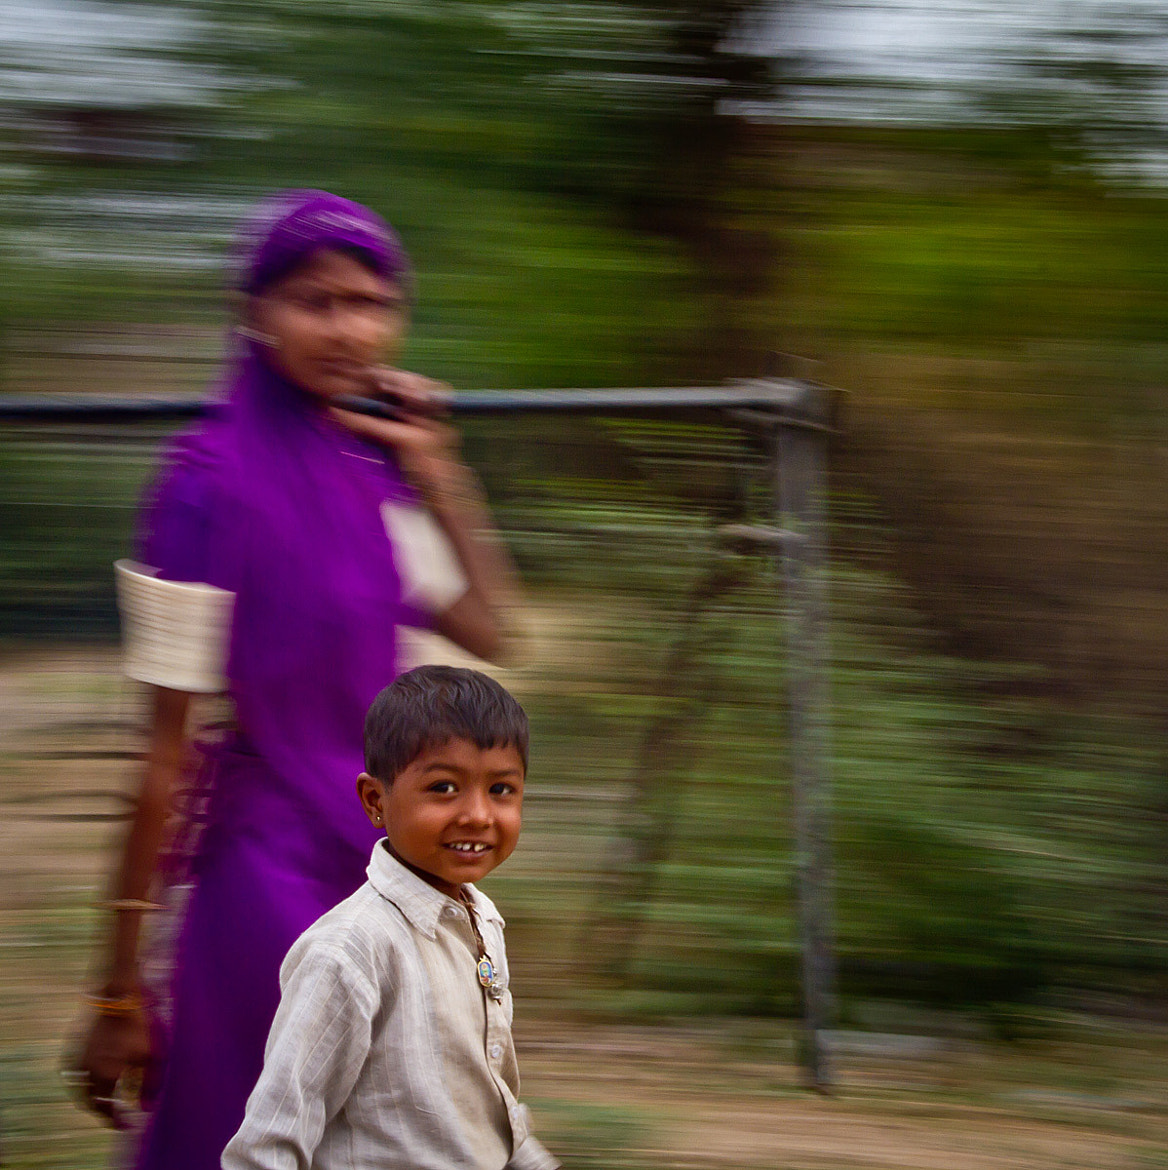 Photograph Happy Child - India In Motion - Rajastan - India by Sandy Gennrich on 500px